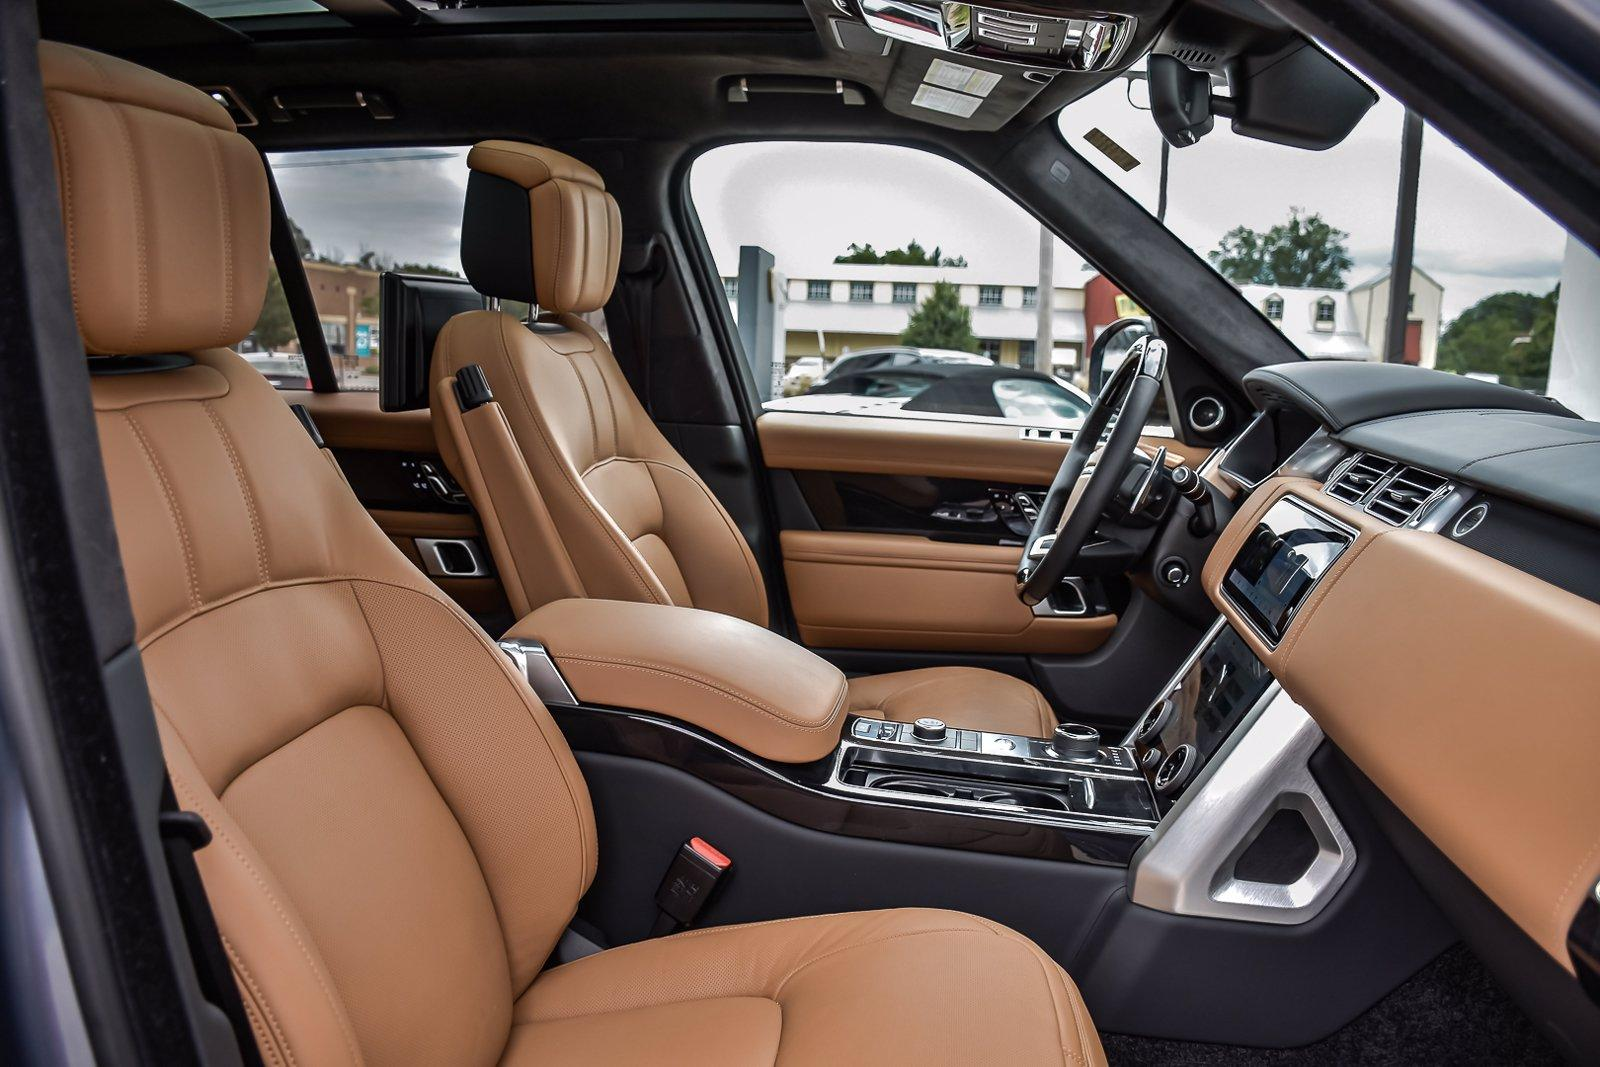 Used 2019 Land Rover Range Rover Autobiography, Rear Ent, | Downers Grove, IL